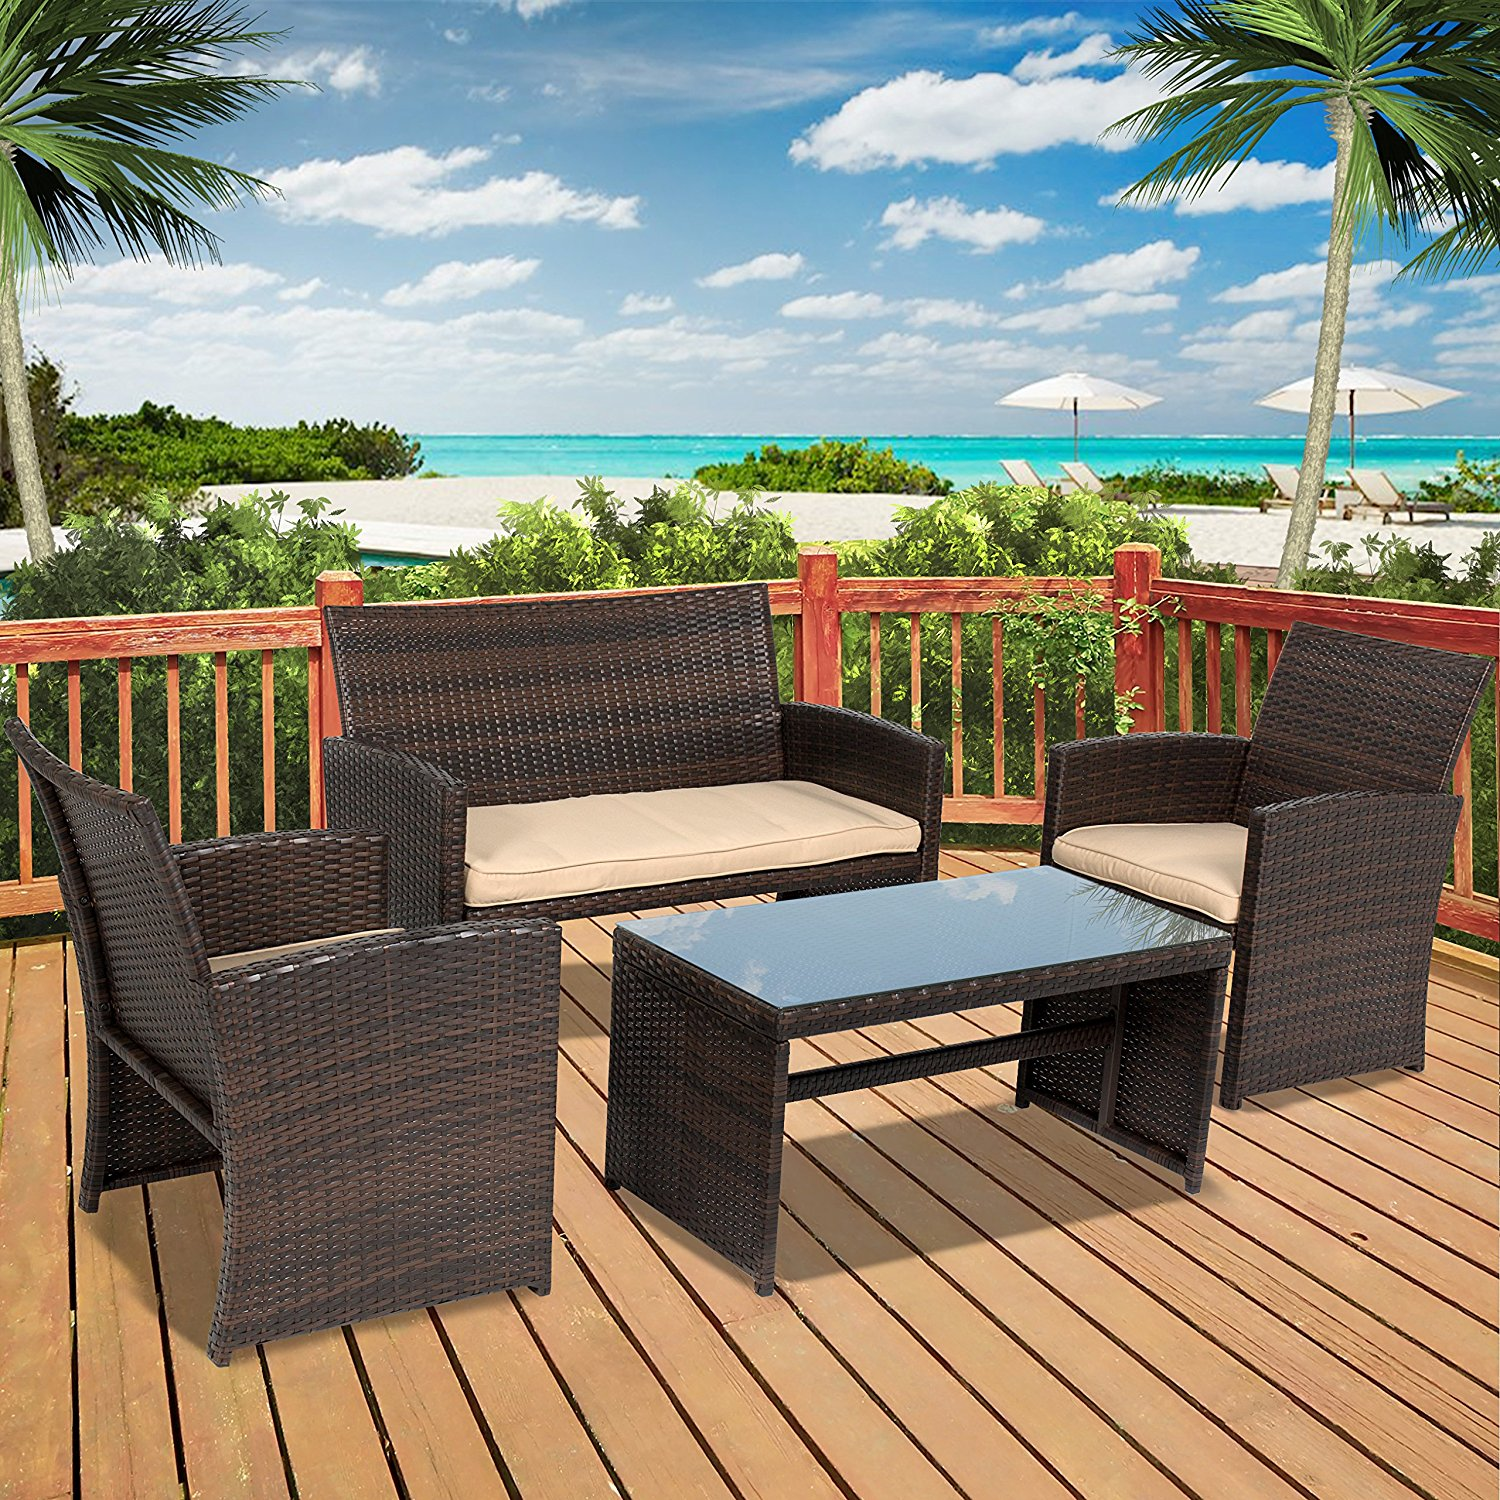 Chic Best Choice Products 4pc Wicker Outdoor Patio Furniture Set Custioned Seats outdoor patio furniture sets